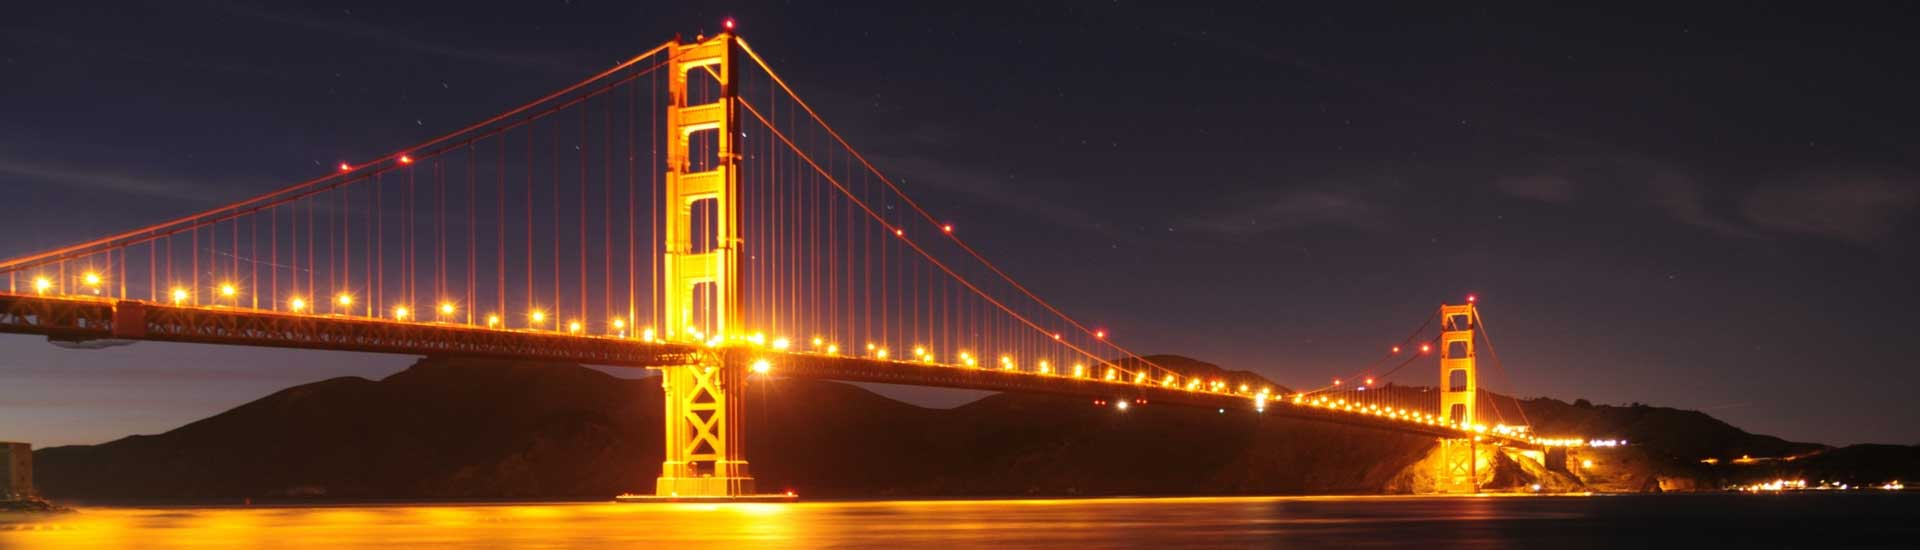 10 of the best photography spots in San Francisco